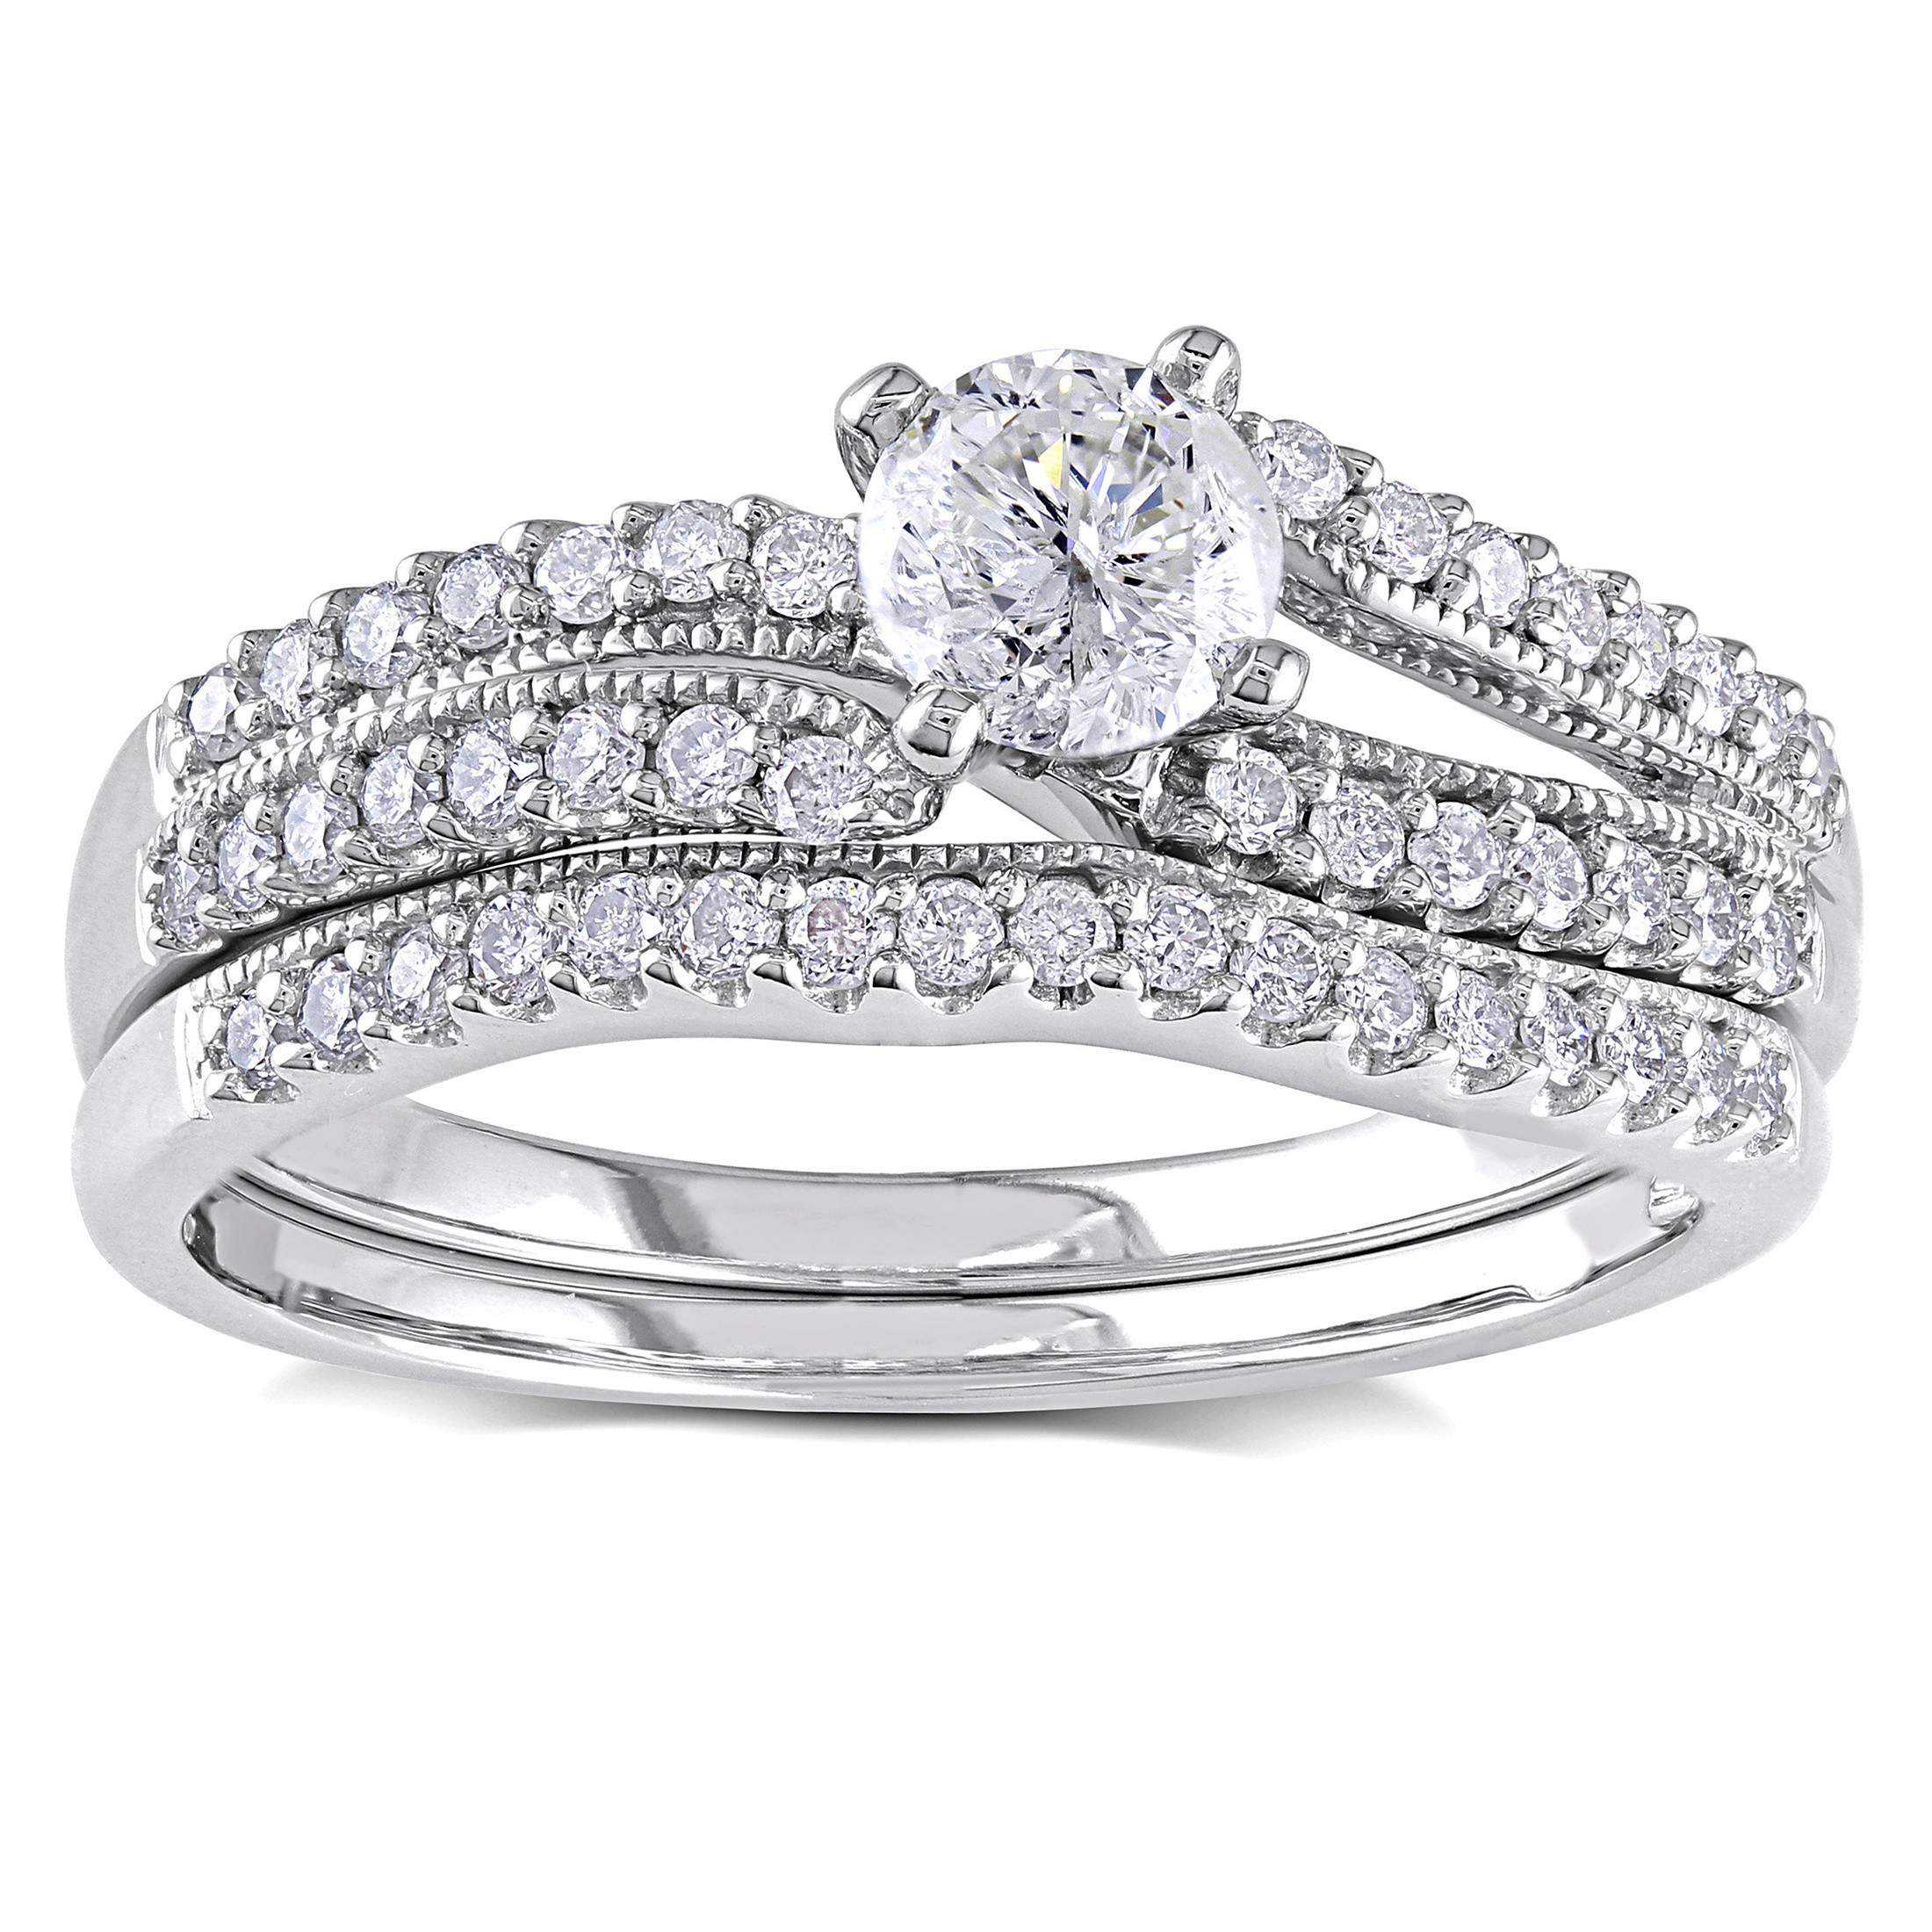 Ladies Diamond Wedding Ring Sets Bridal Sets Diamond Bridal Sets For Women